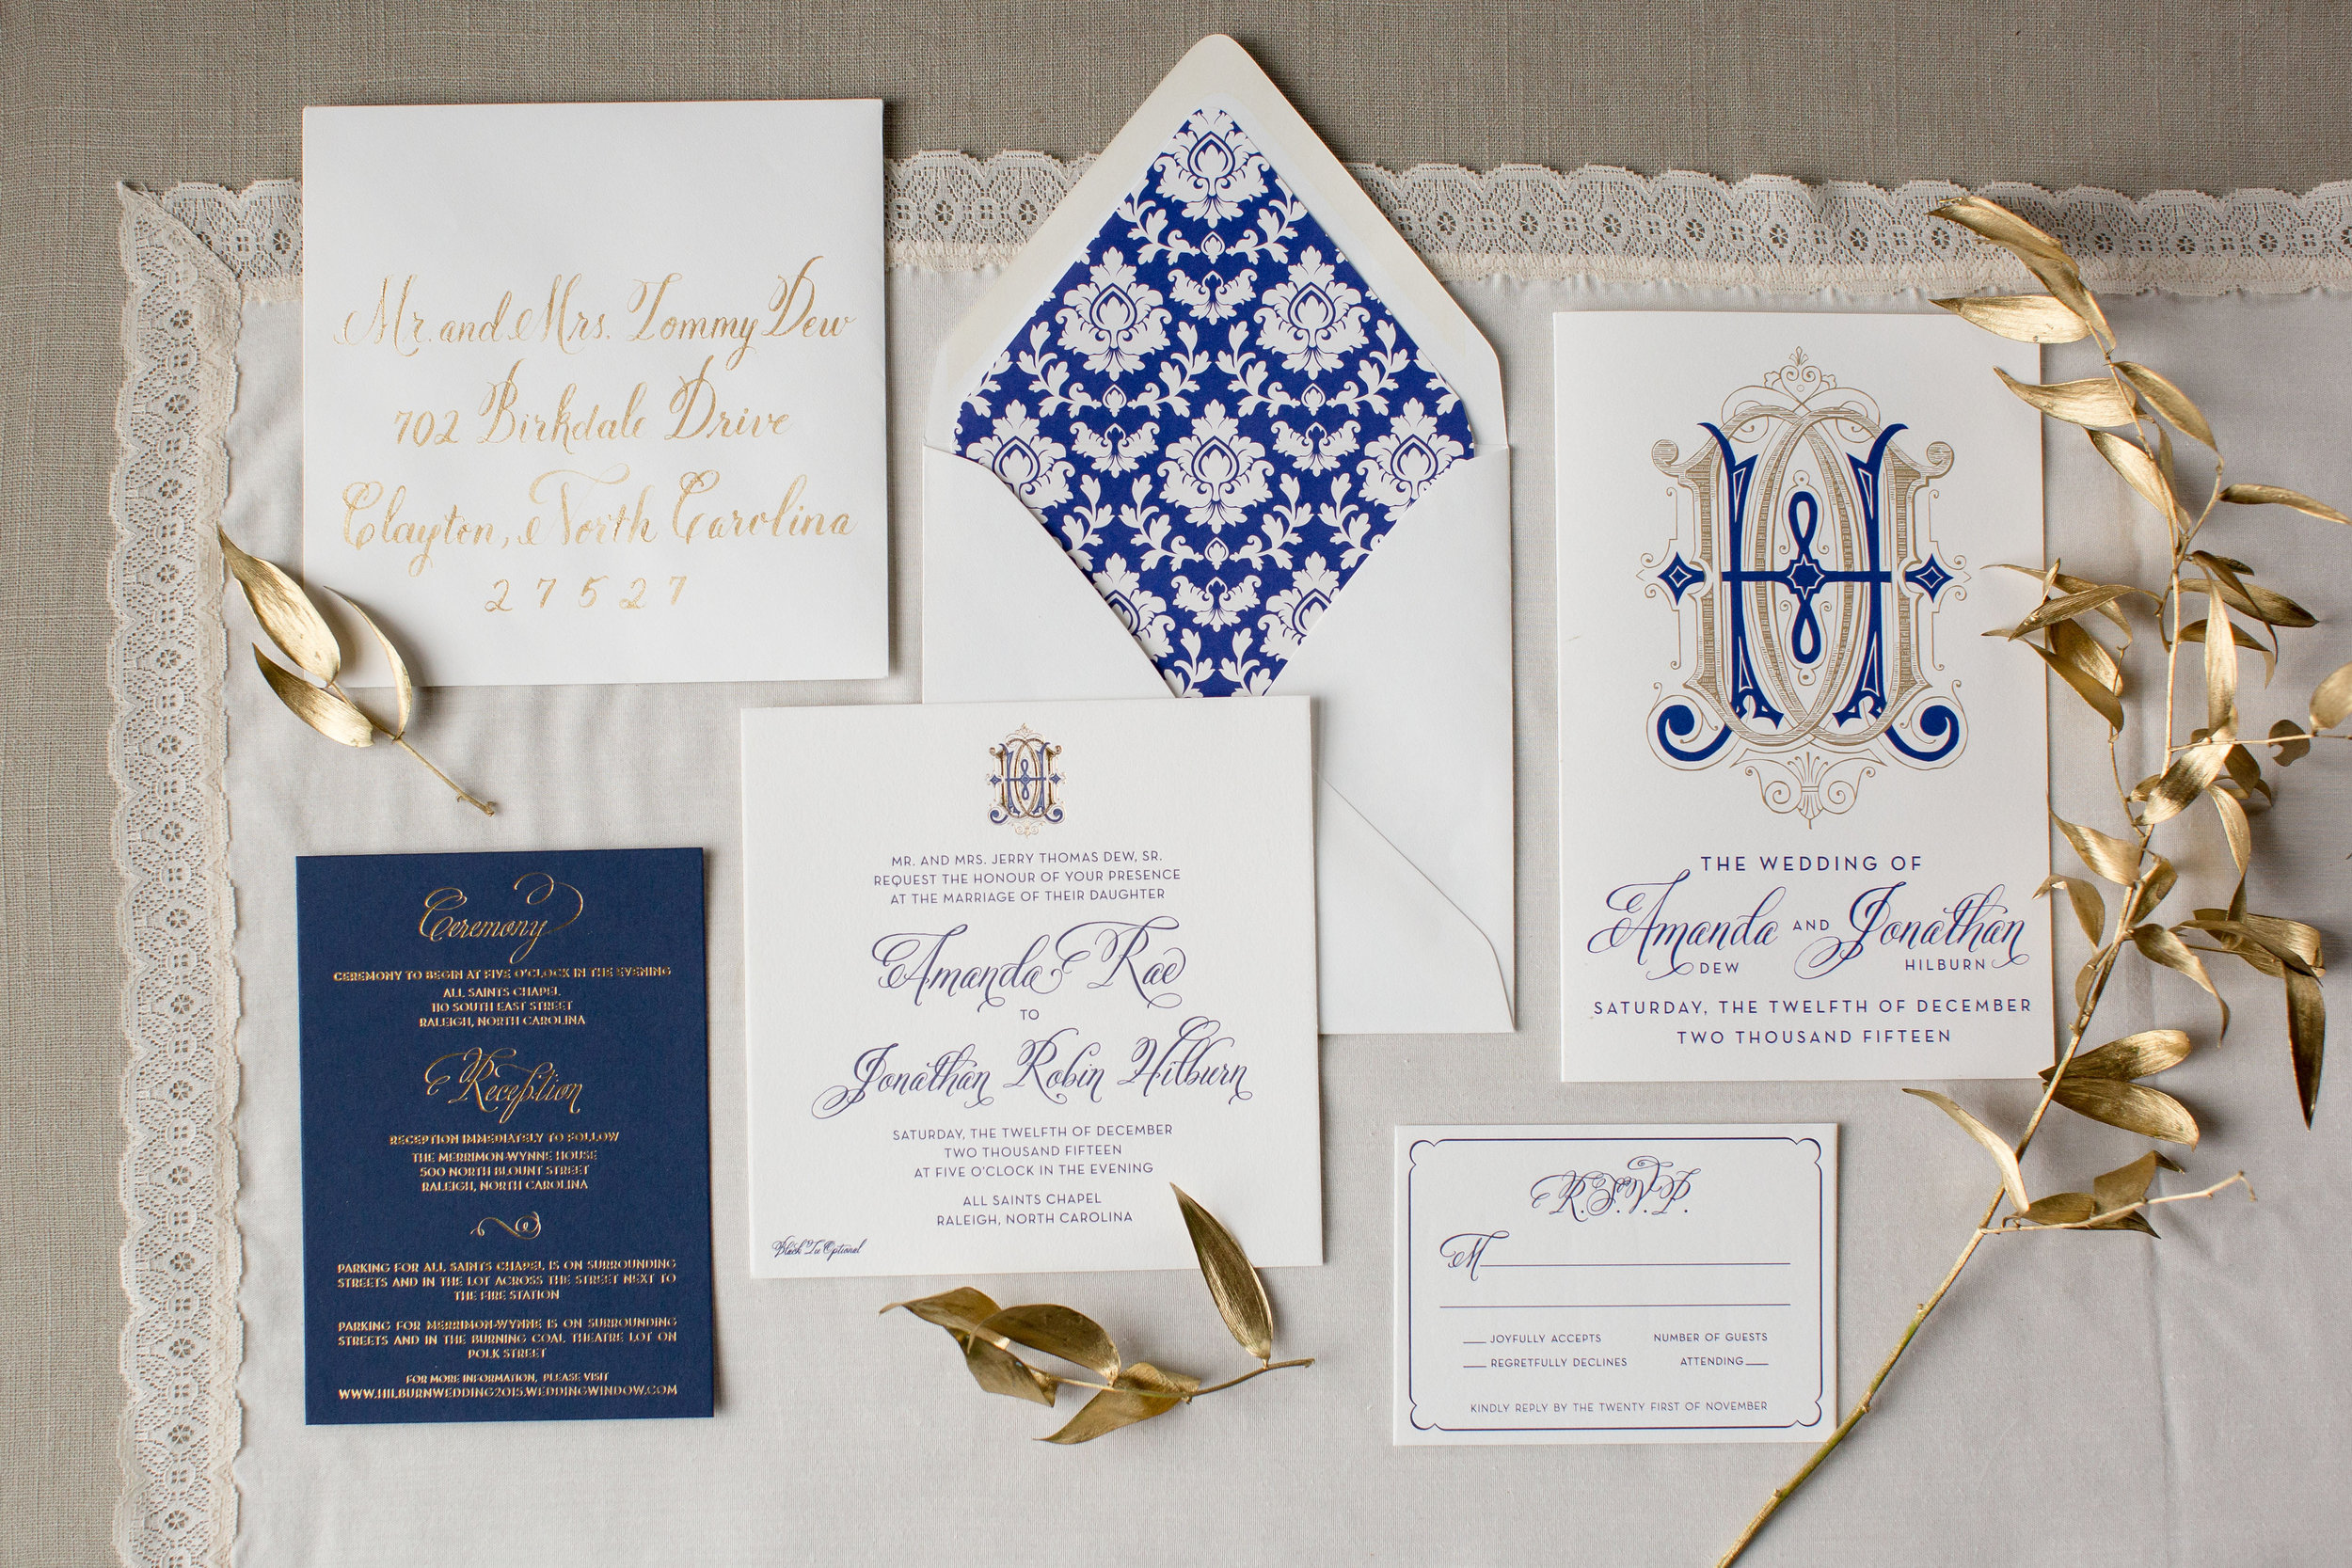 Amanda & Jonathan's custom invitation suite, featuring an interlocking monogram, navy letterpress and gold foil - stunning!